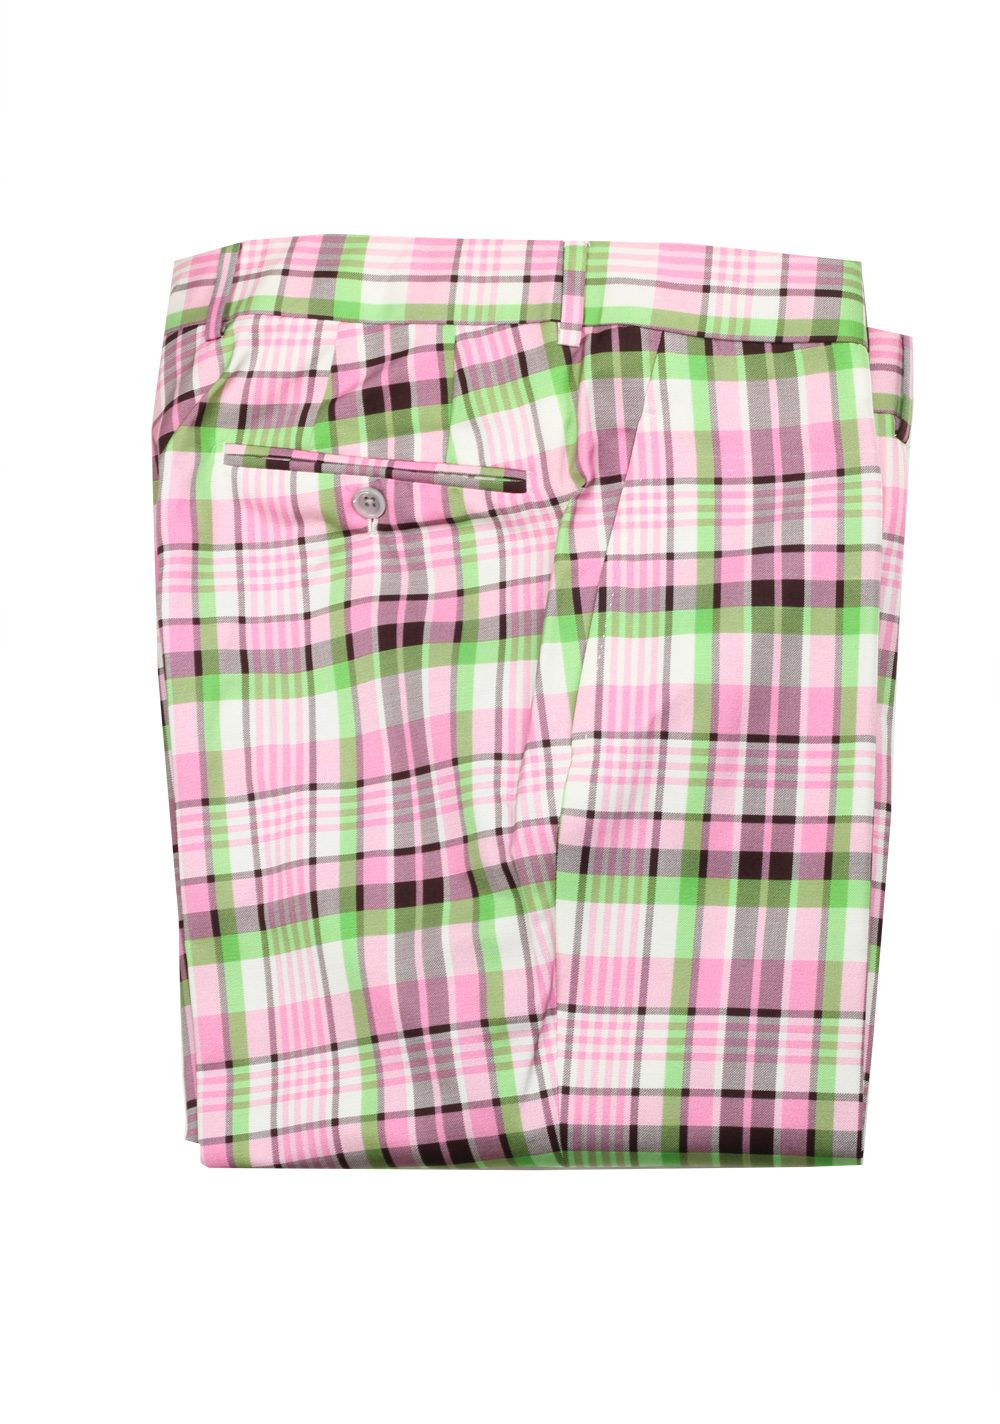 TOM FORD Pink Green Checked Silk Cotton Trousers Size 48 / 32 U.S. | Costume Limité